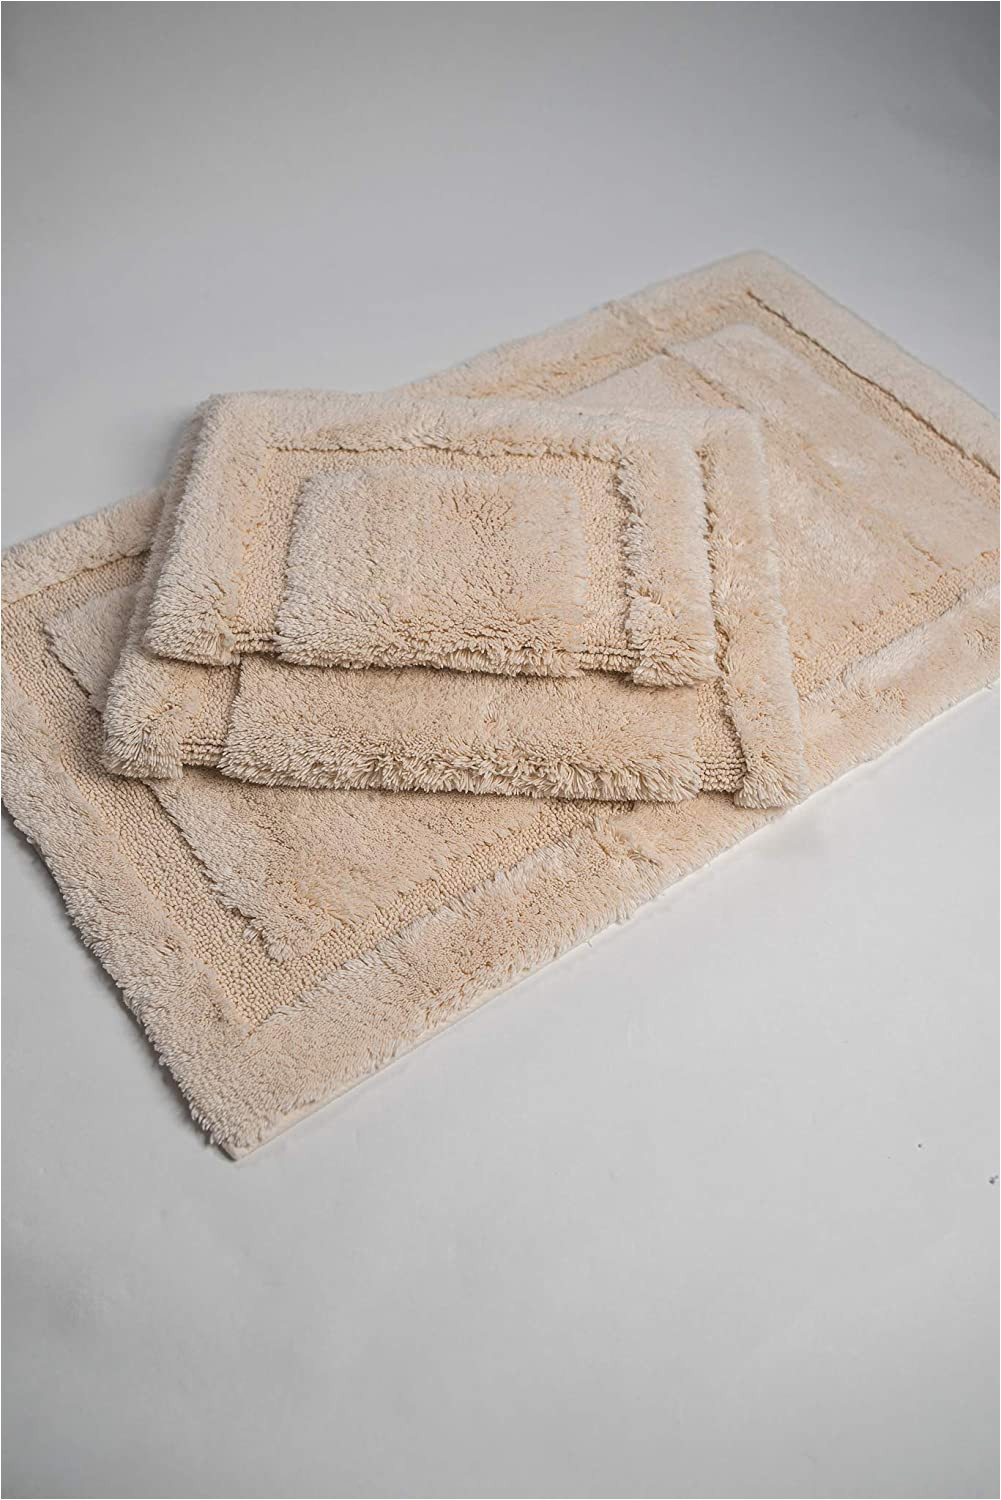 Organic Cotton Bath Rug Grund organic Cotton Bath Rug asheville Series 24 40 Inch